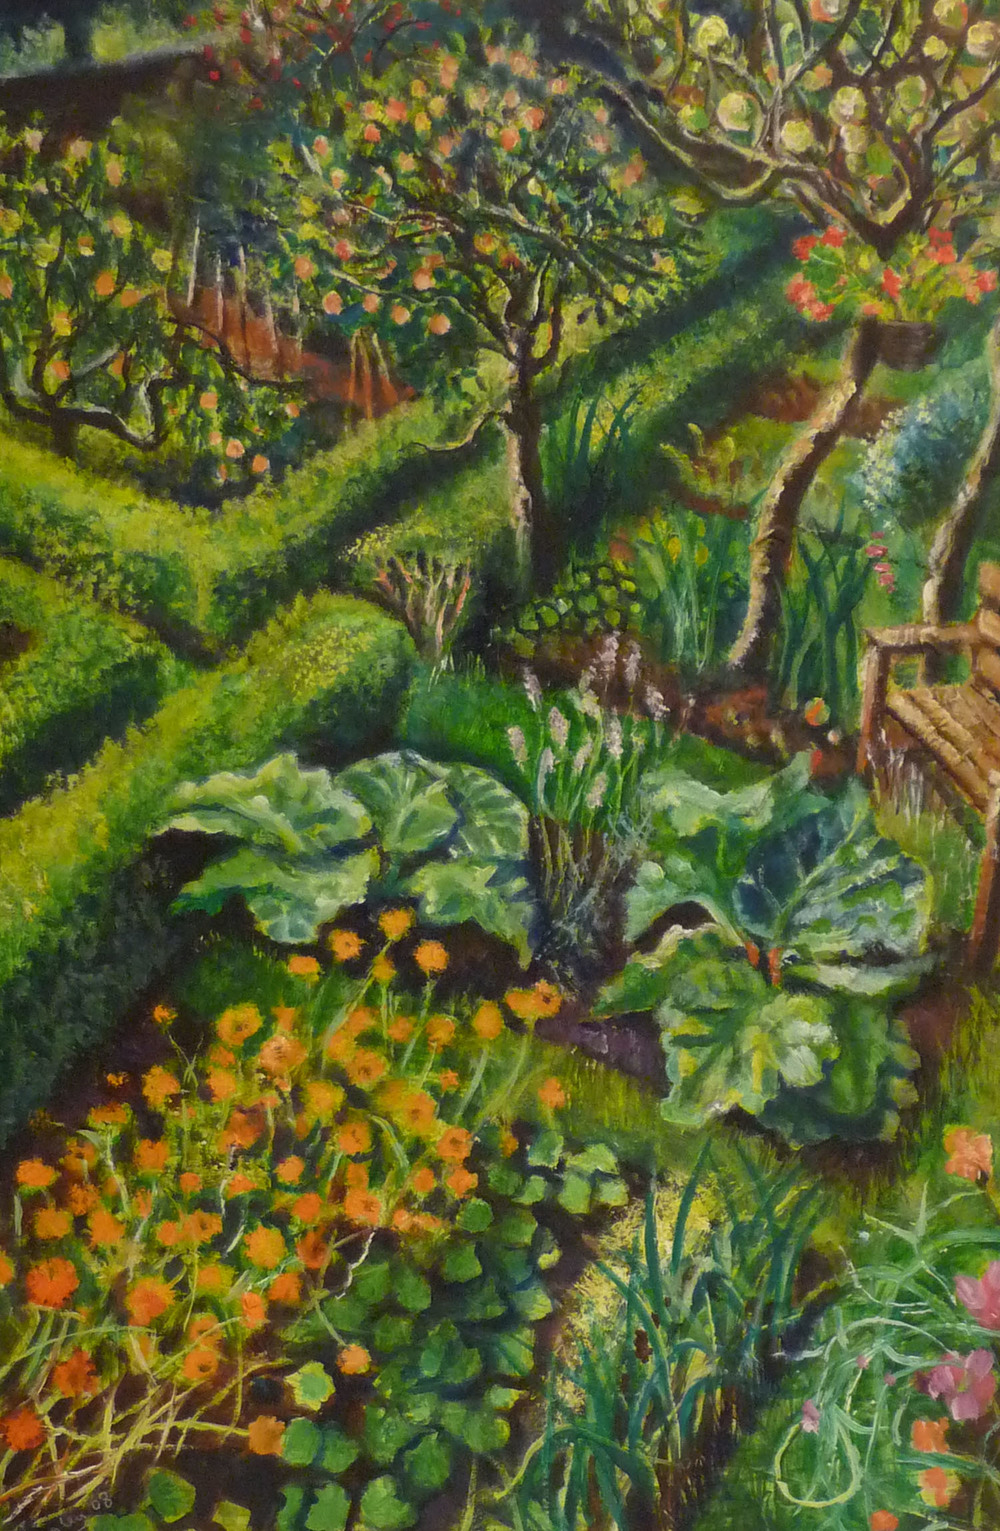 Sarah Longley_-_Garden Bench_oil on board_61 x 41cm.jpg